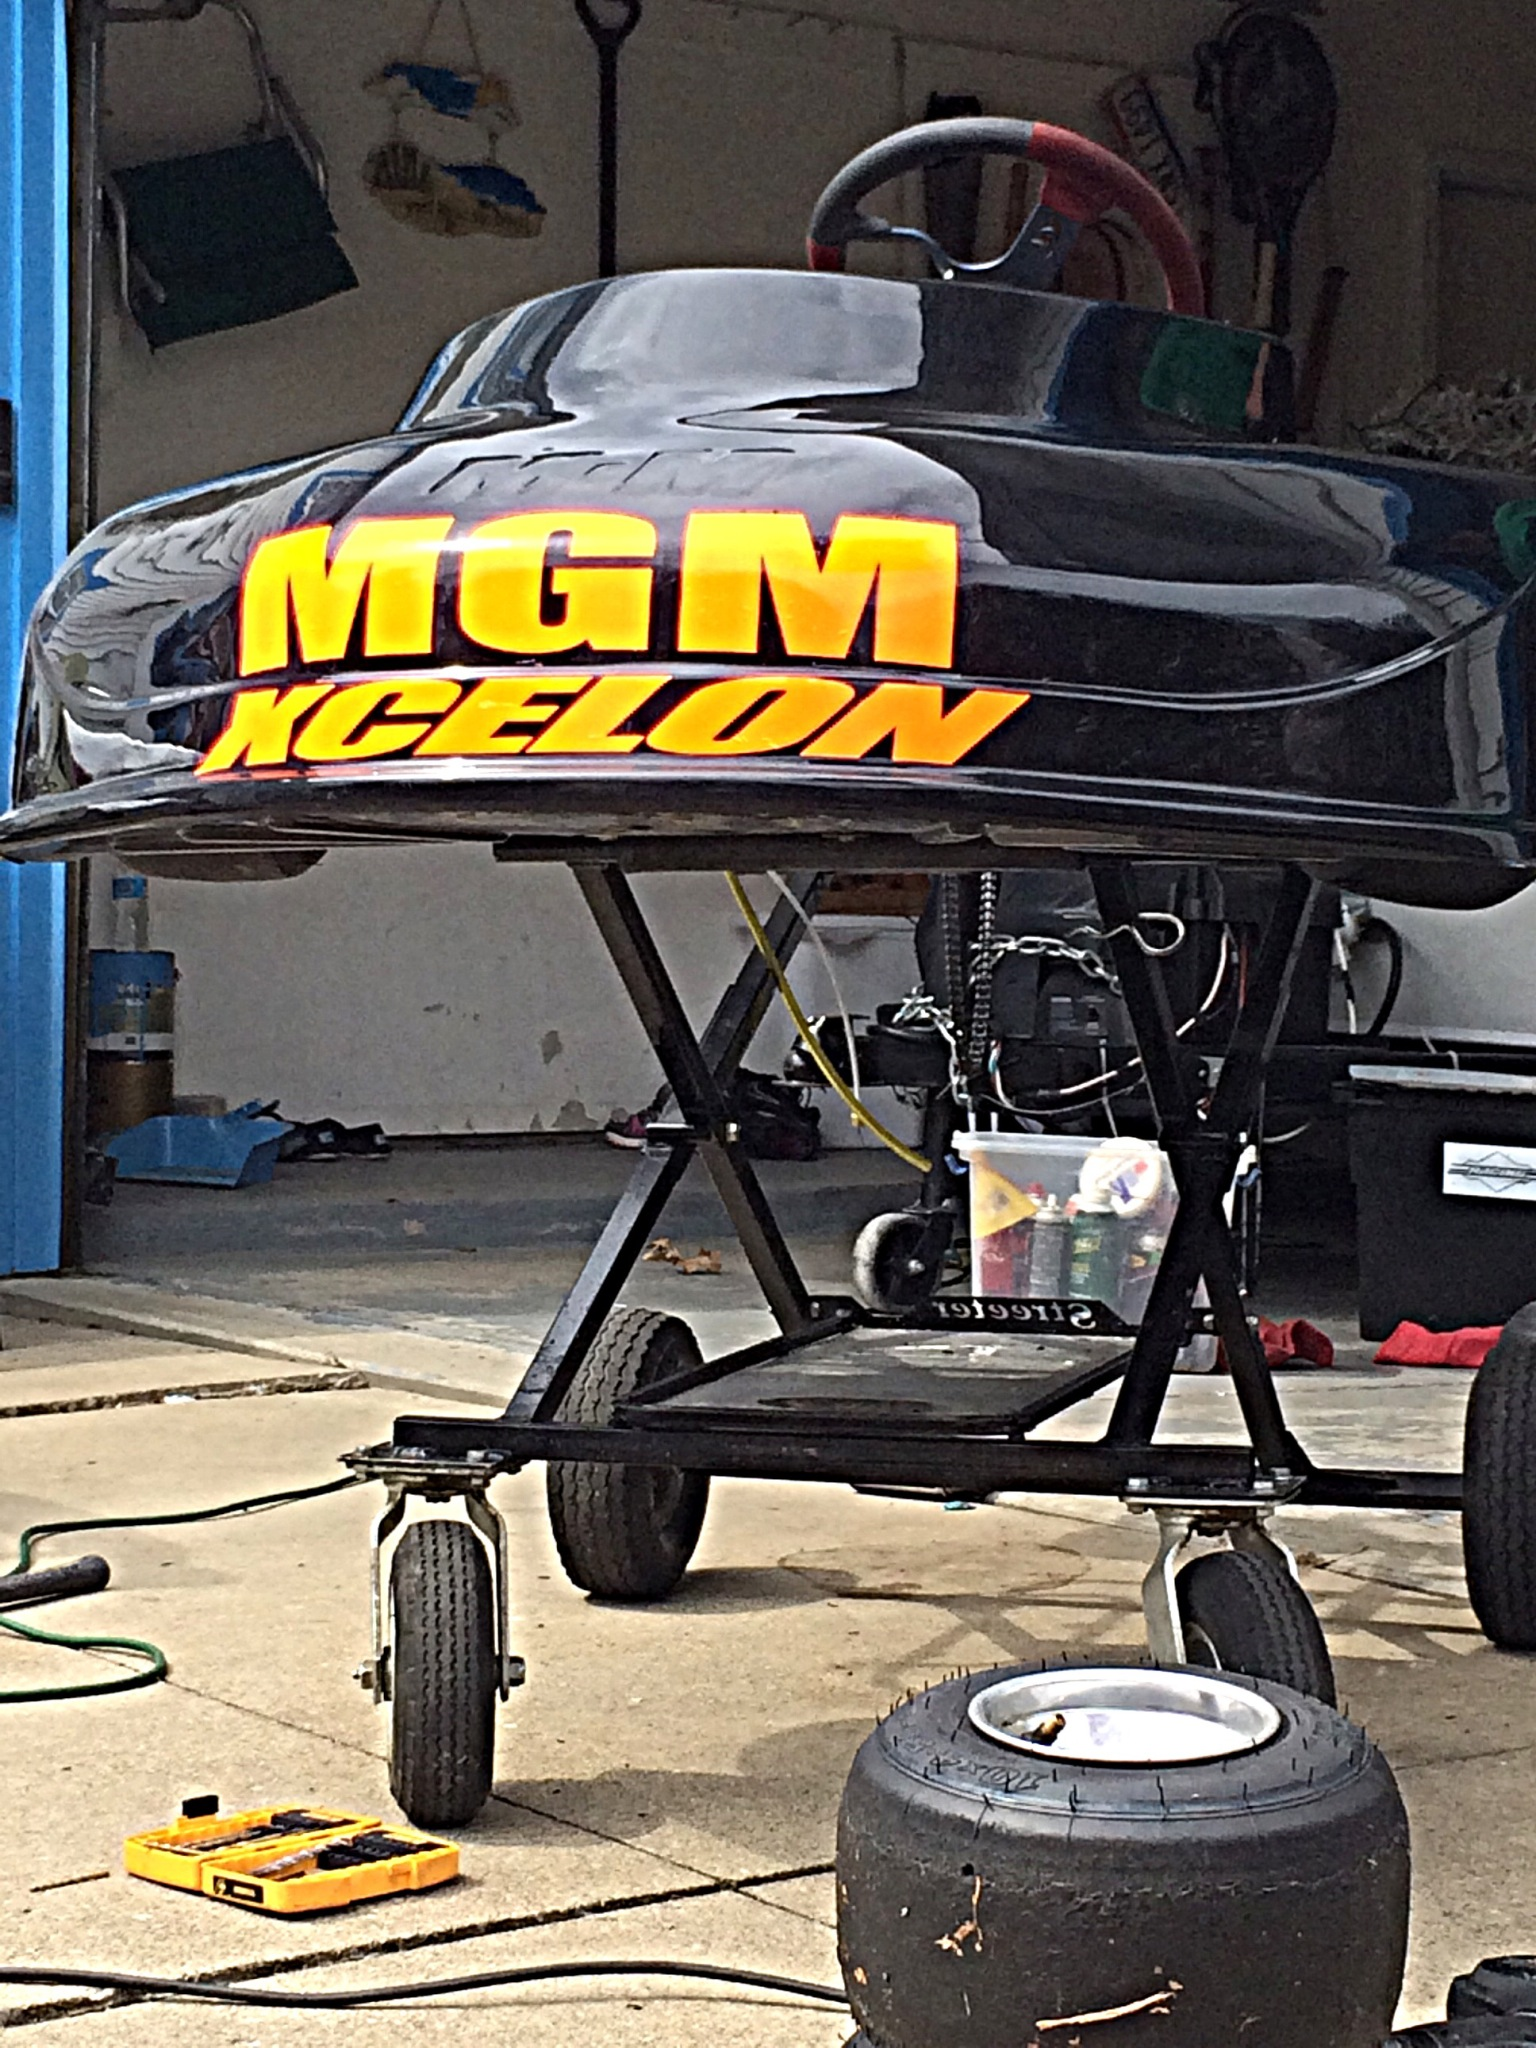 An MGM Xcelon from the Gold Cup Series, circa 2010